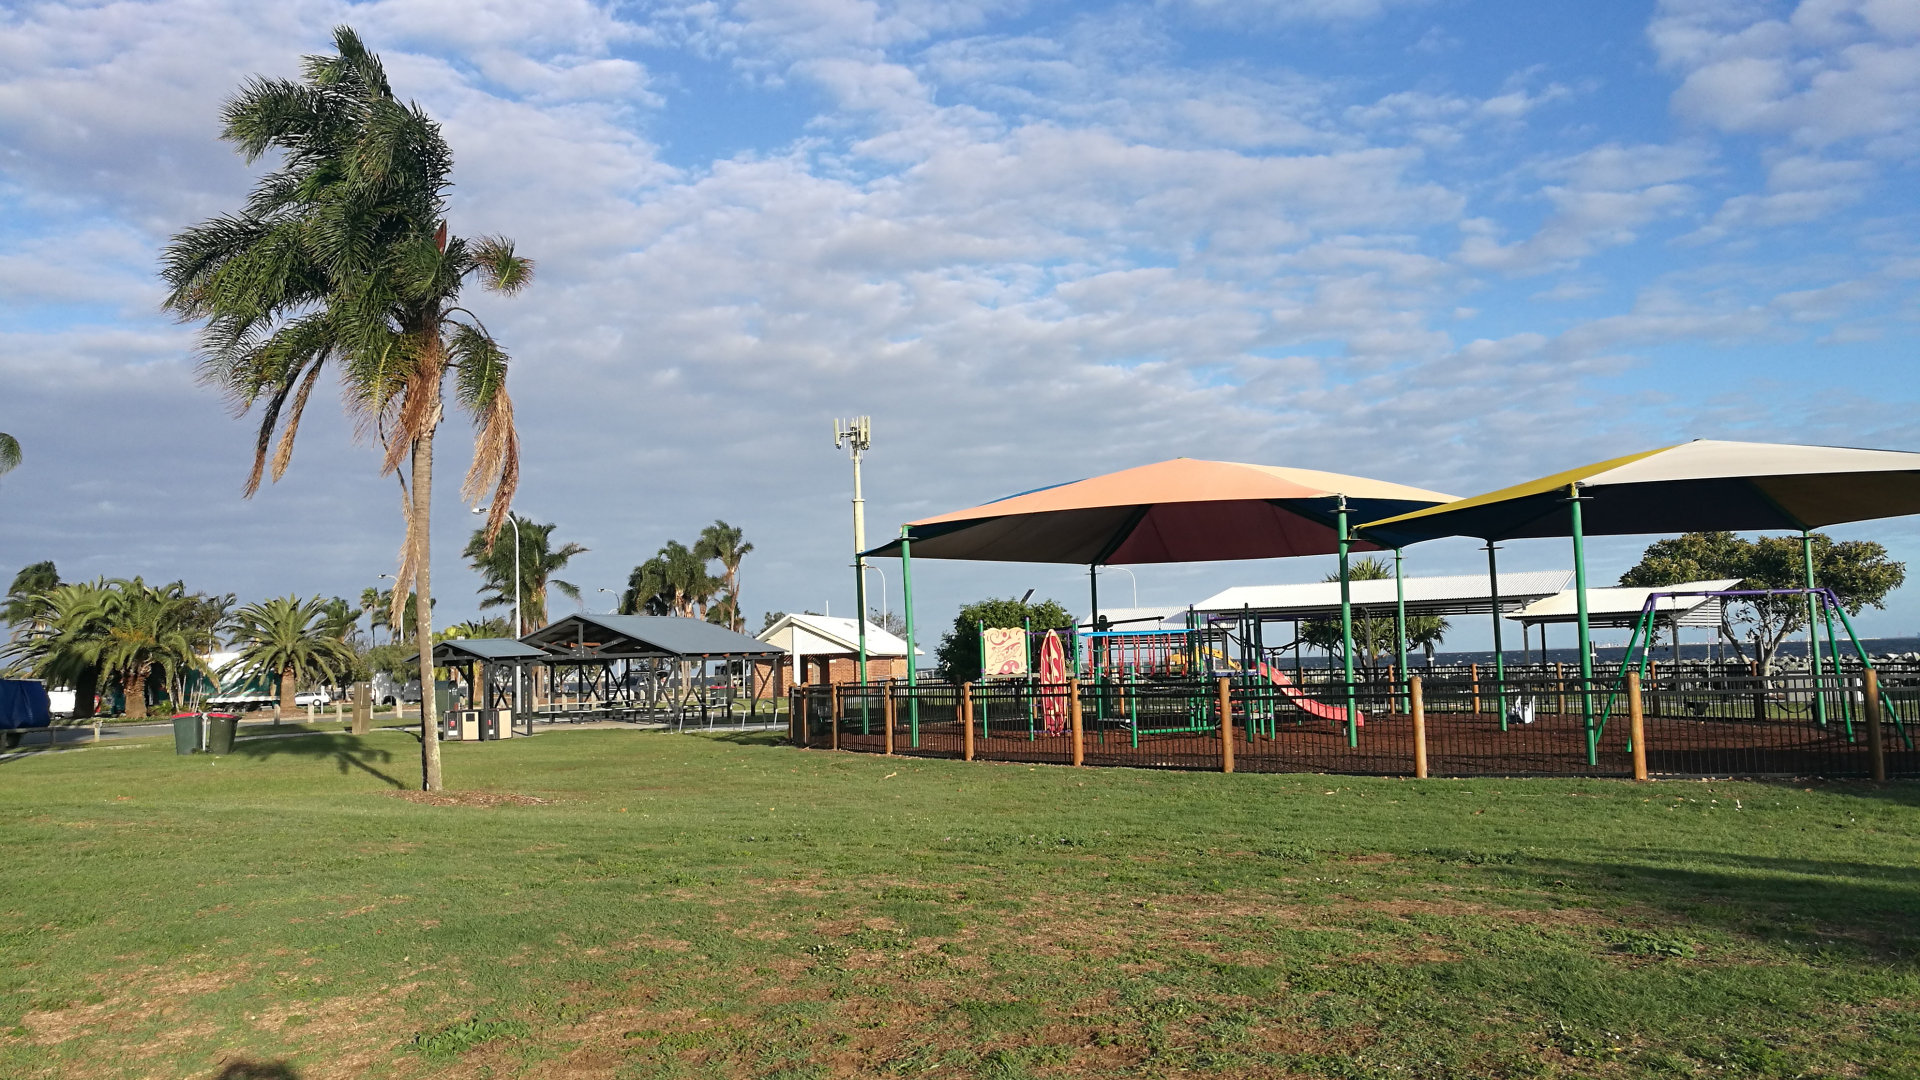 Playground and picnic tables at Pelican Park in Clontarf on the Redcliffe Peninsula. The park gets its name from the pelicans that visit the area, with views across the water of the bridge, Brisbane City, and Woody Point Jetty